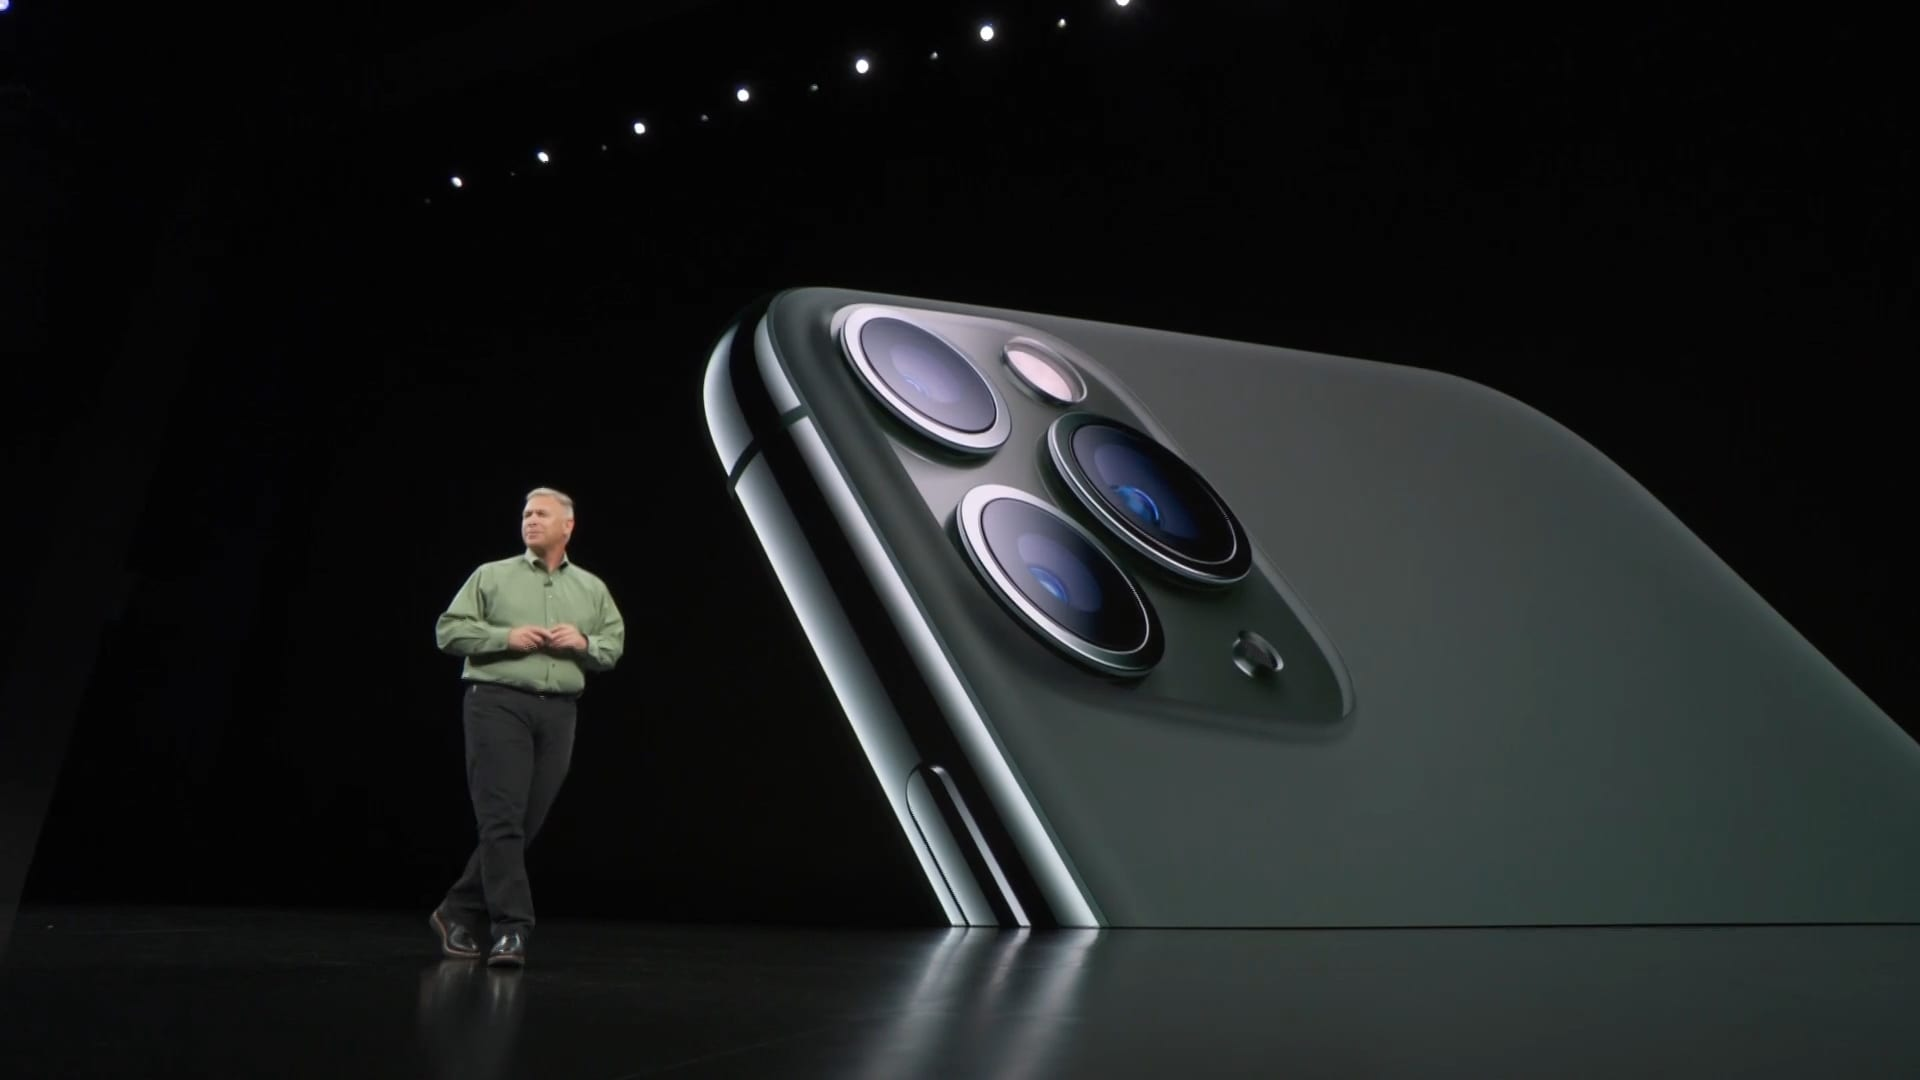 Apple's newest iPhone relies on cameras to hide its lack of innovation